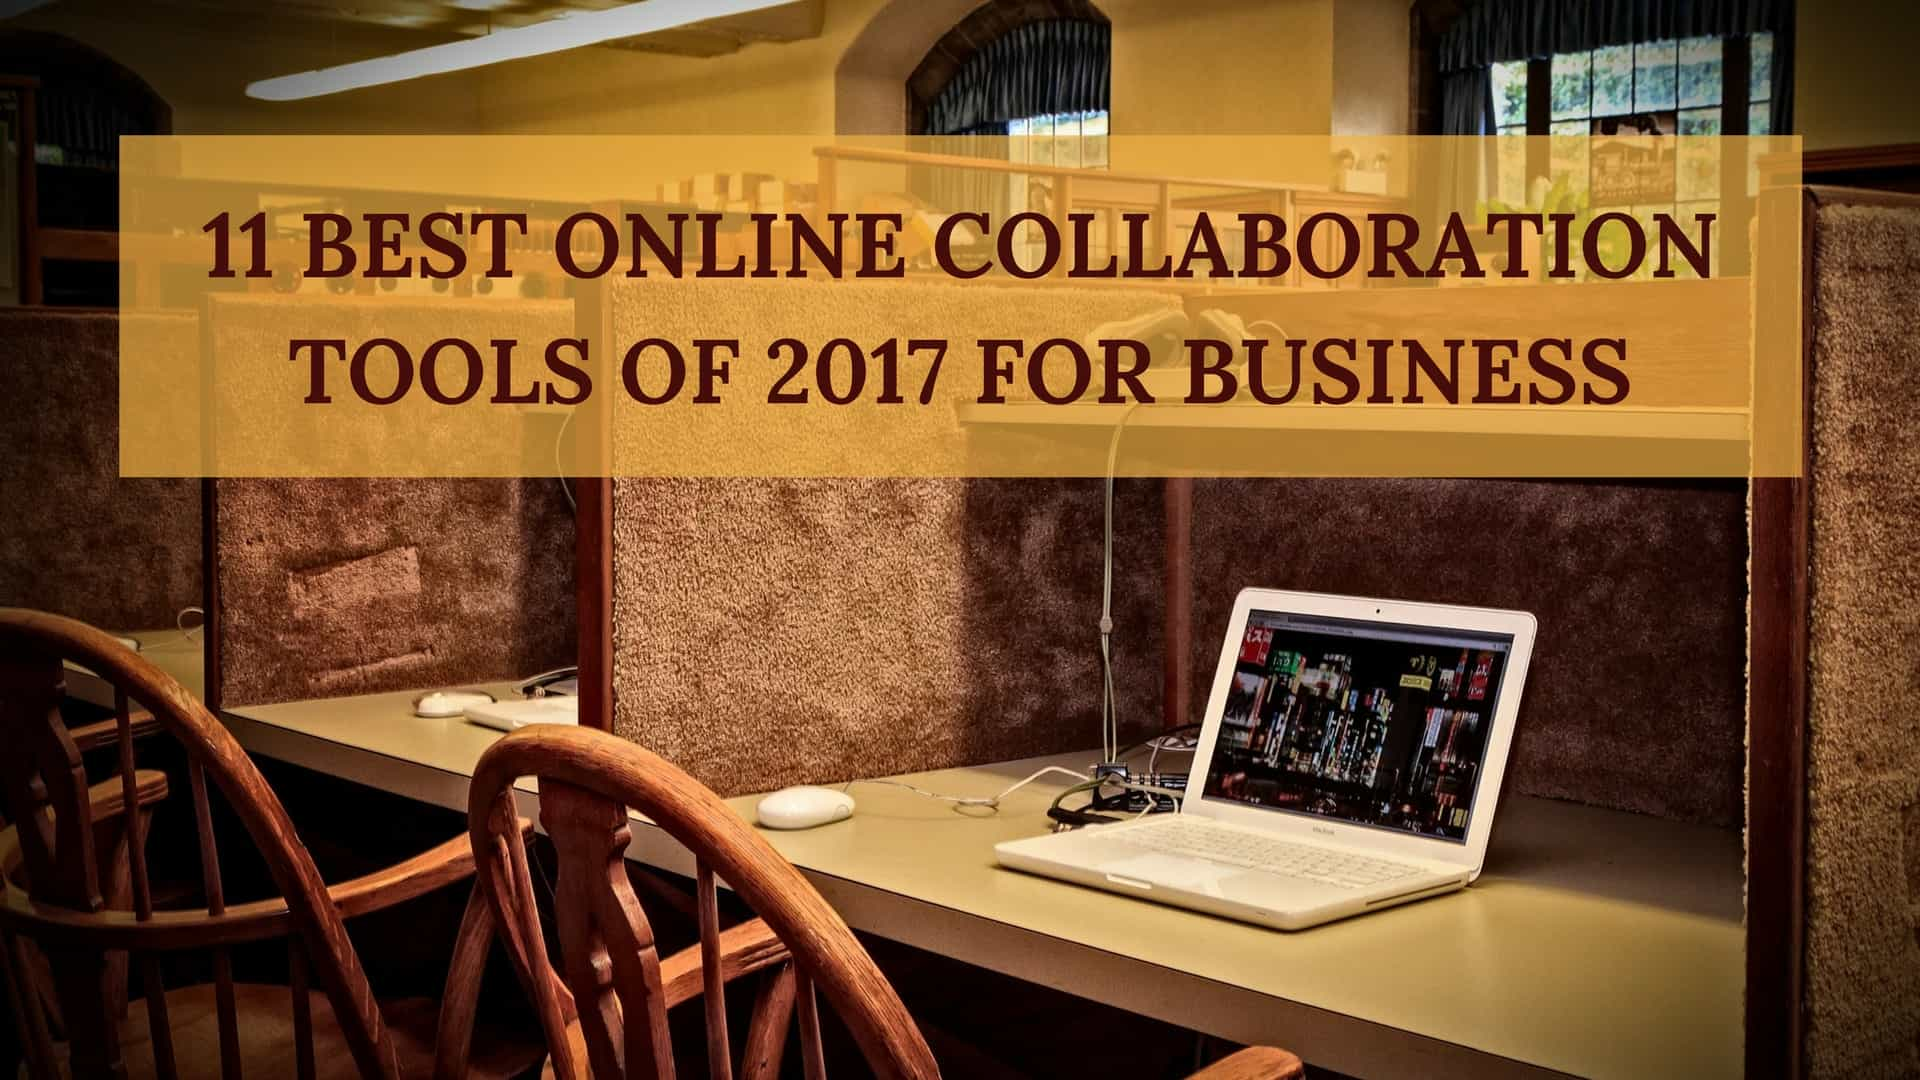 11 best online collaboration tools of 2017 for business